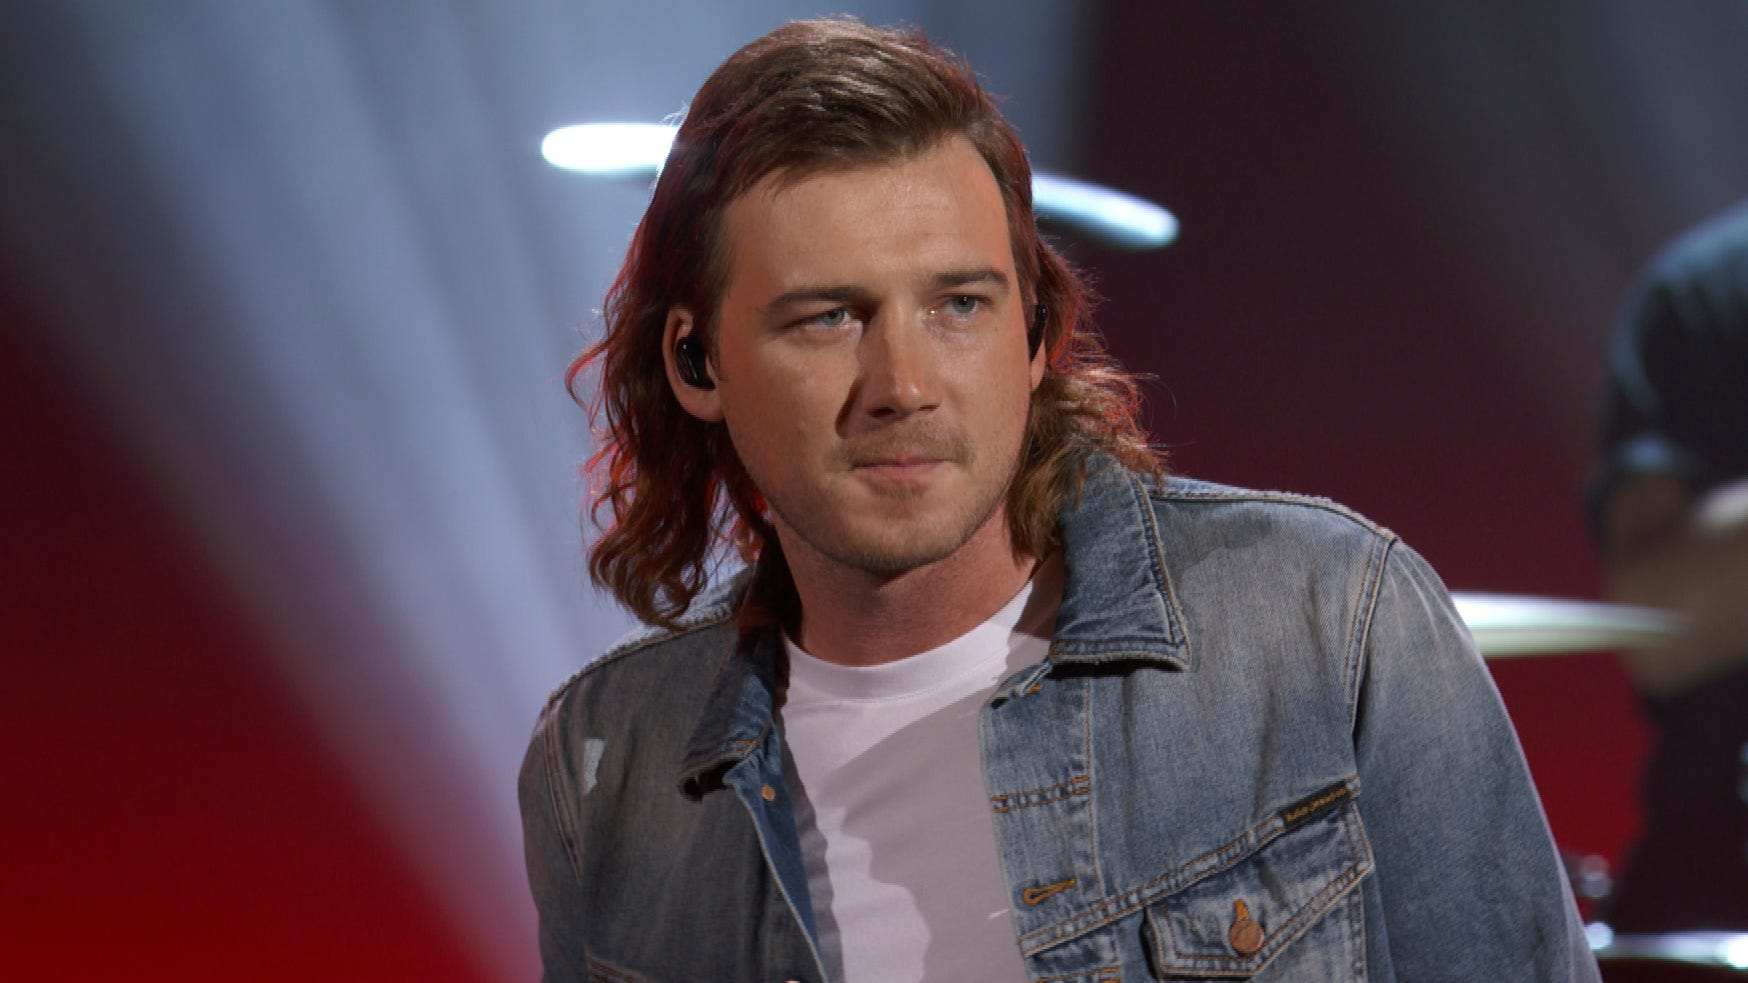 Morgan Wallen Won T Be Performing This Summer After Using Racial Slur